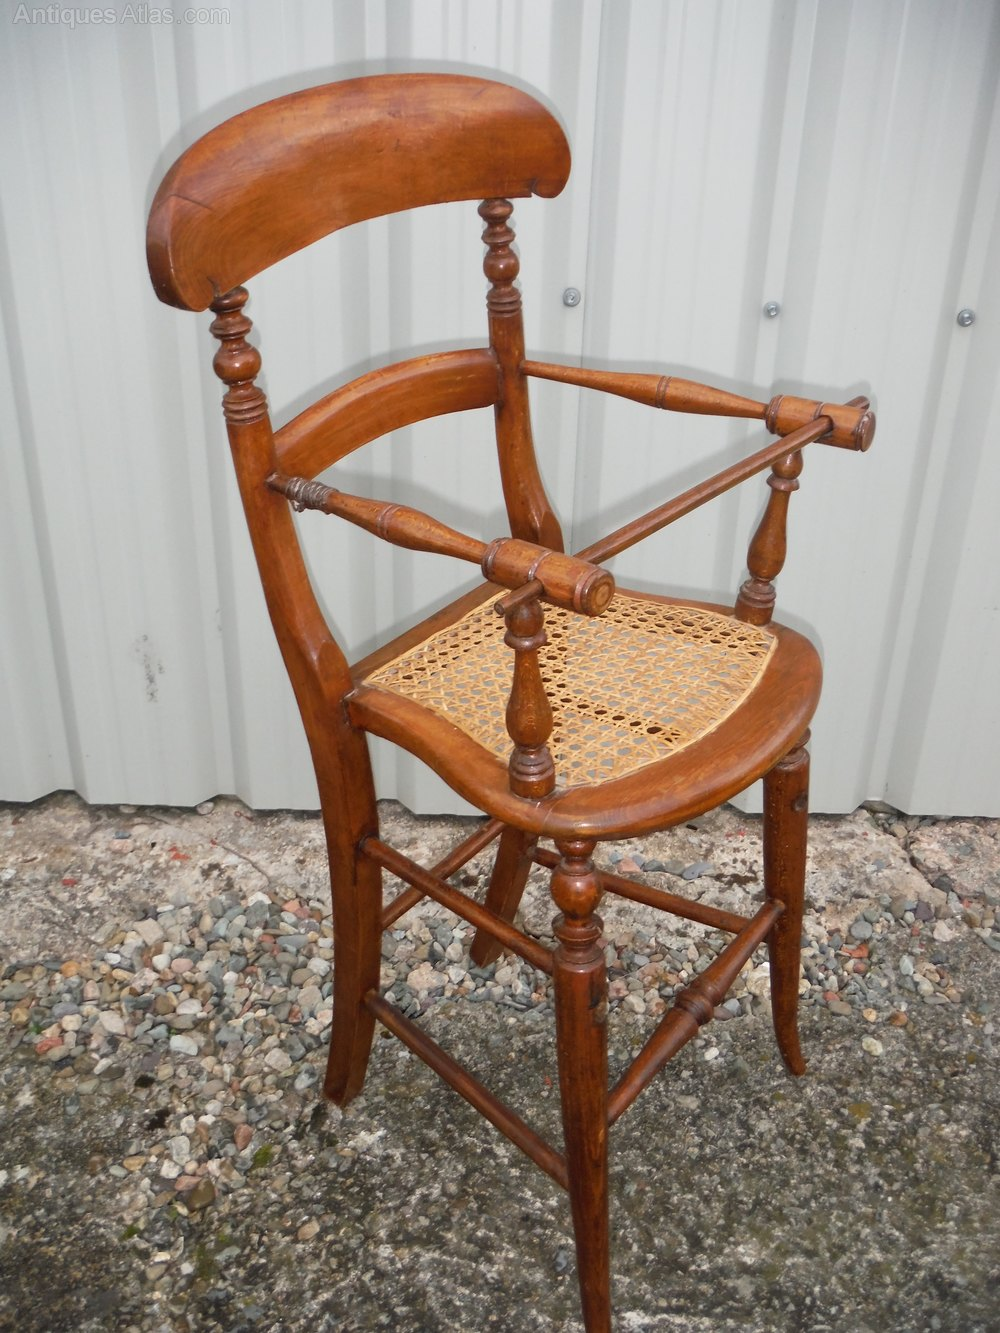 Repairing Cane Chairs furthermore Photo together with Gallery likewise Service Area as well Recent projects. on caning chairs repair